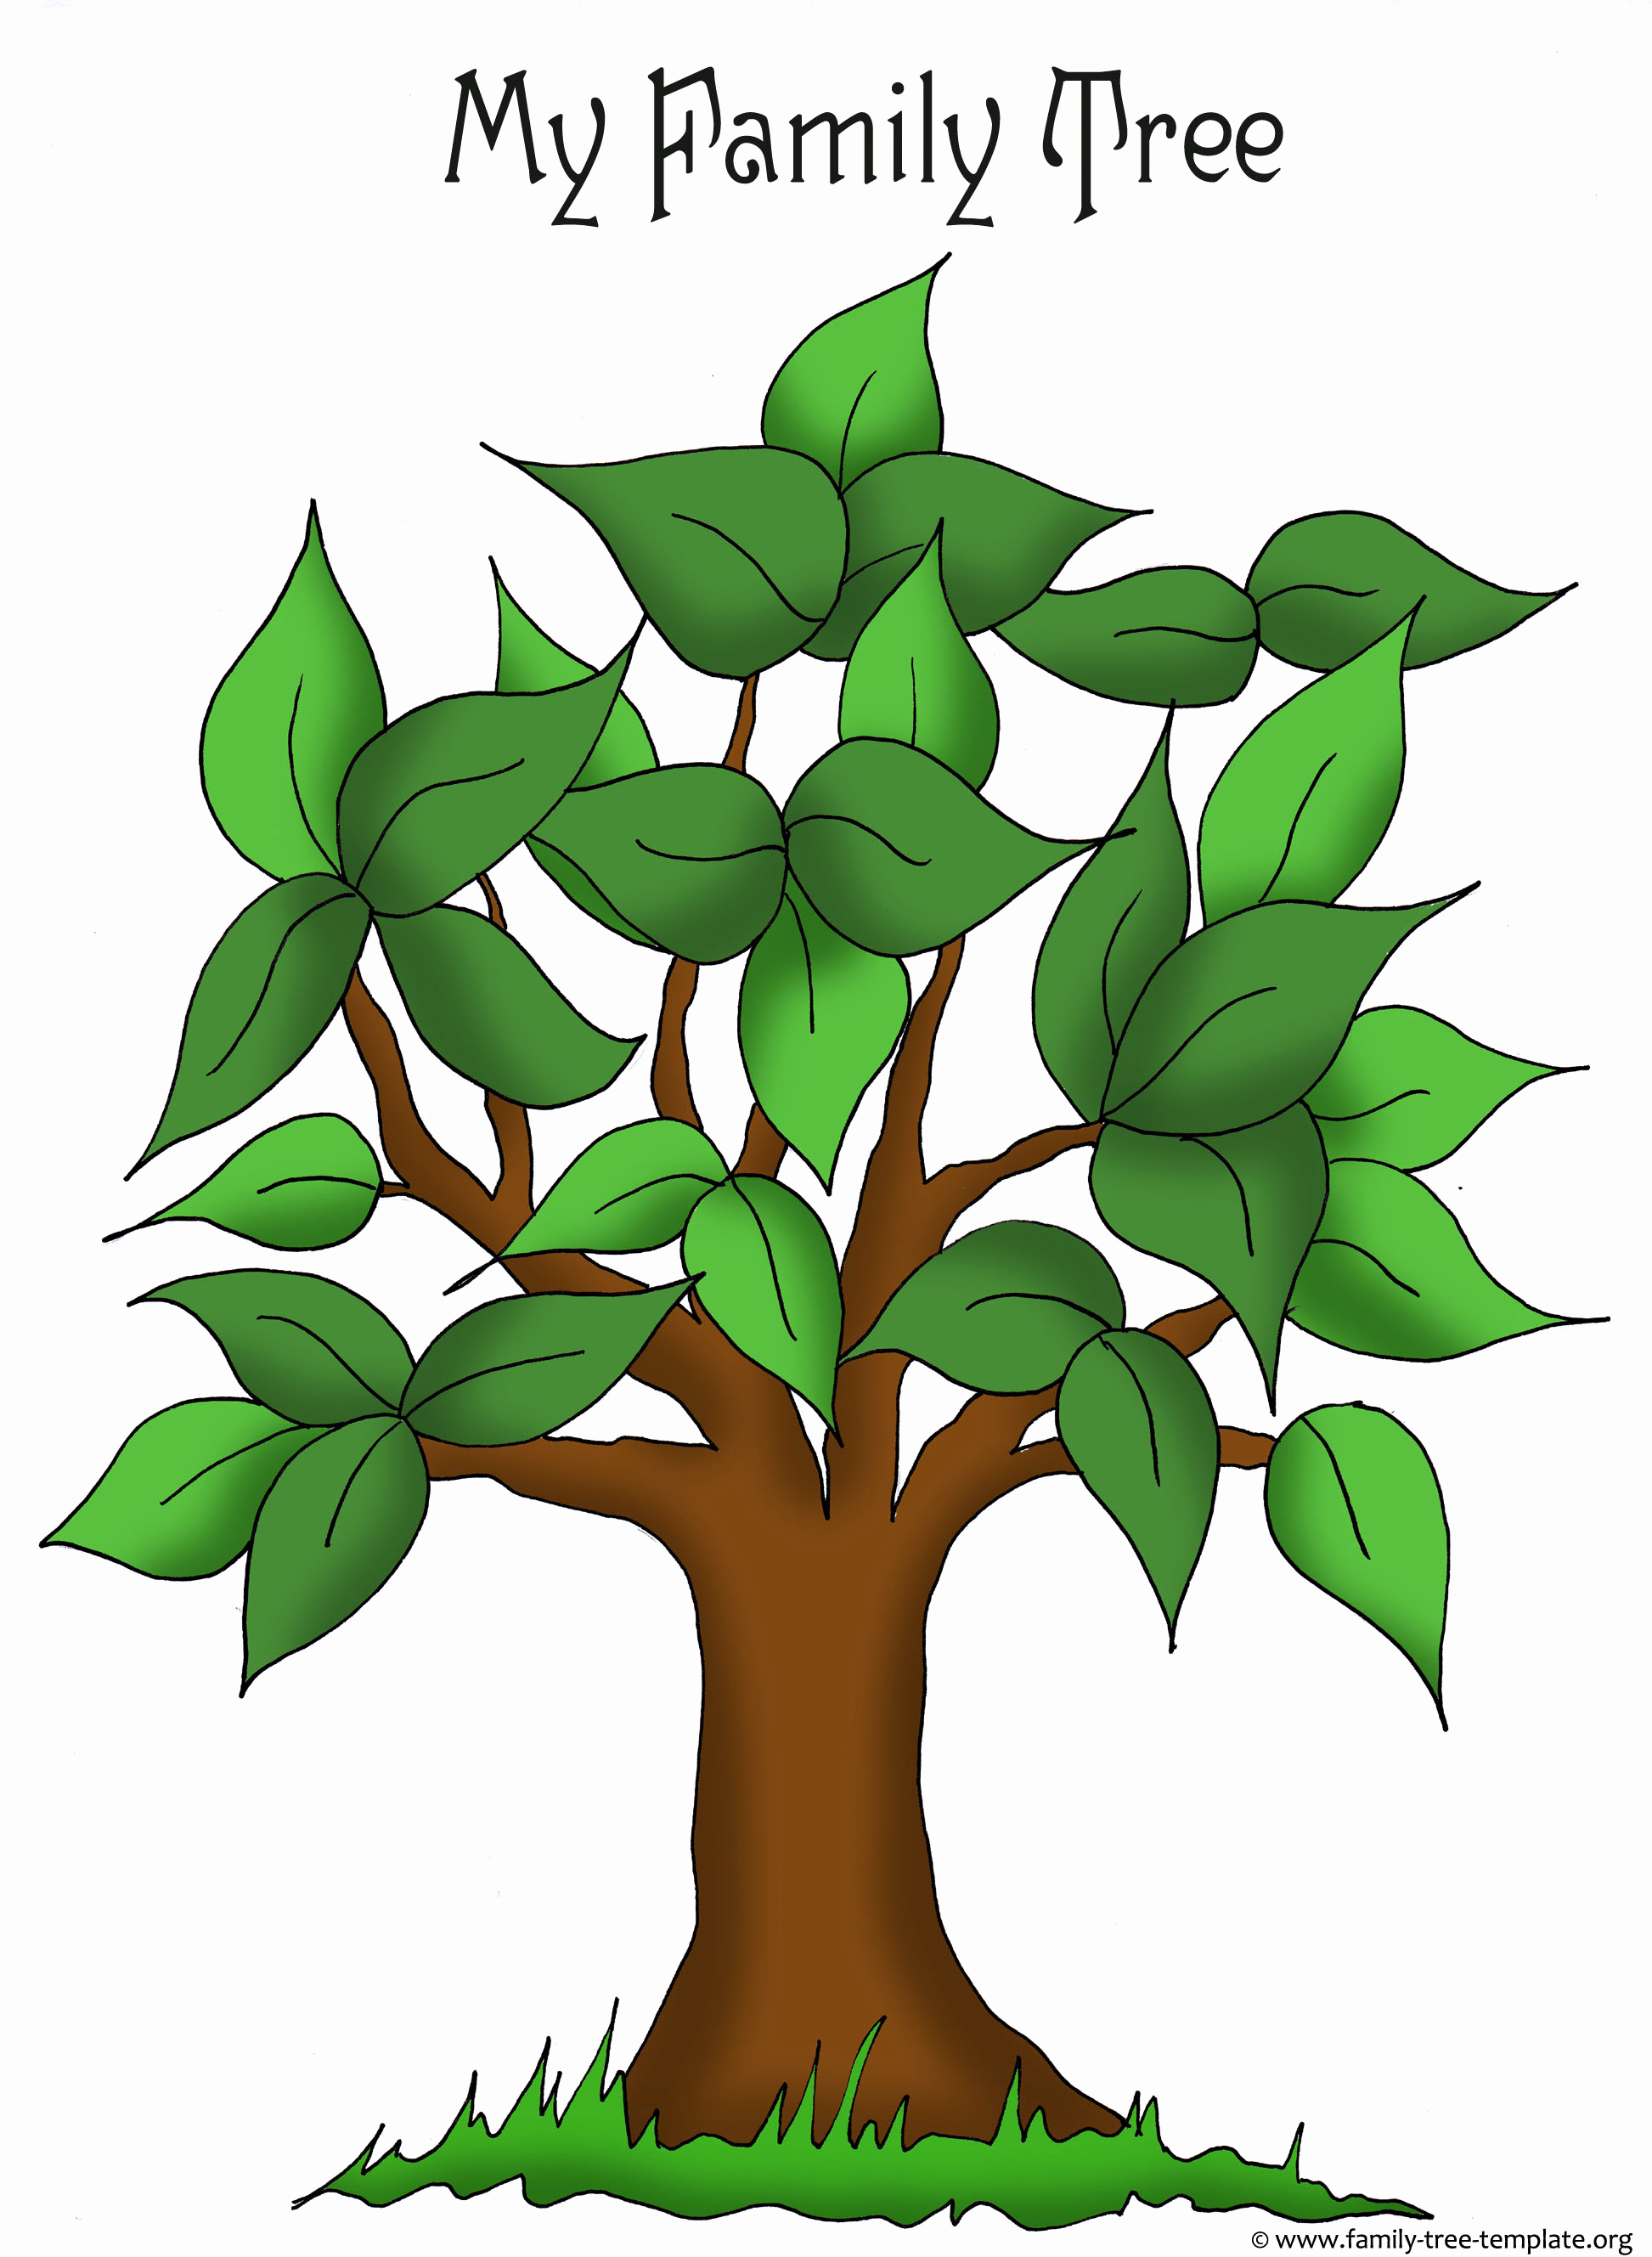 Family Tree Template Online Awesome Family Tree Templates & Genealogy Clipart for Your